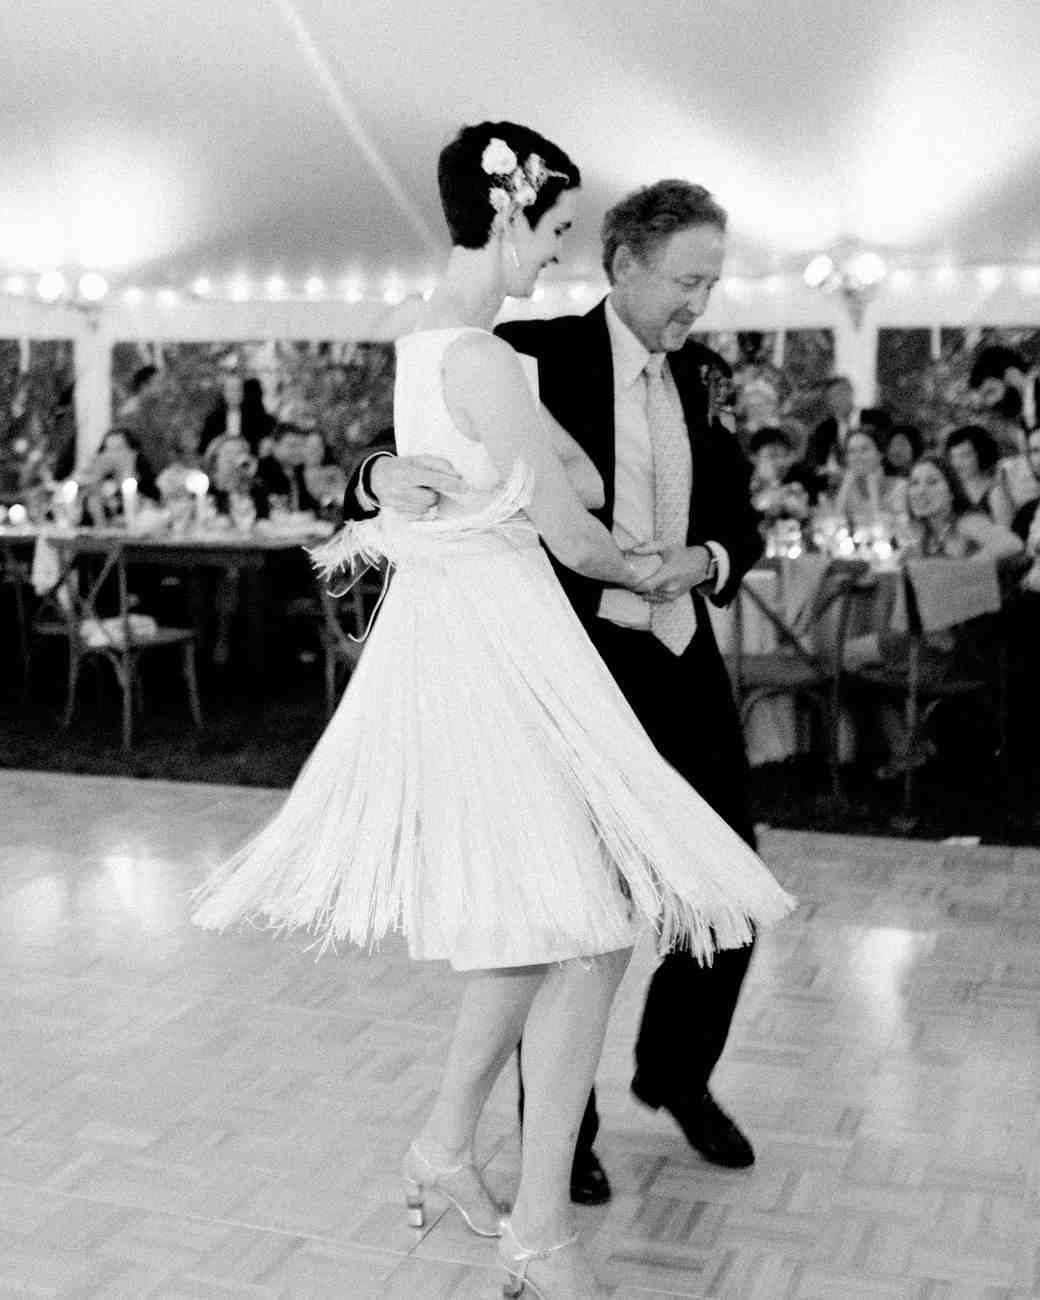 Father Daughter Wedding Dance: Emotional Father-Daughter Dance Songs For Your Wedding